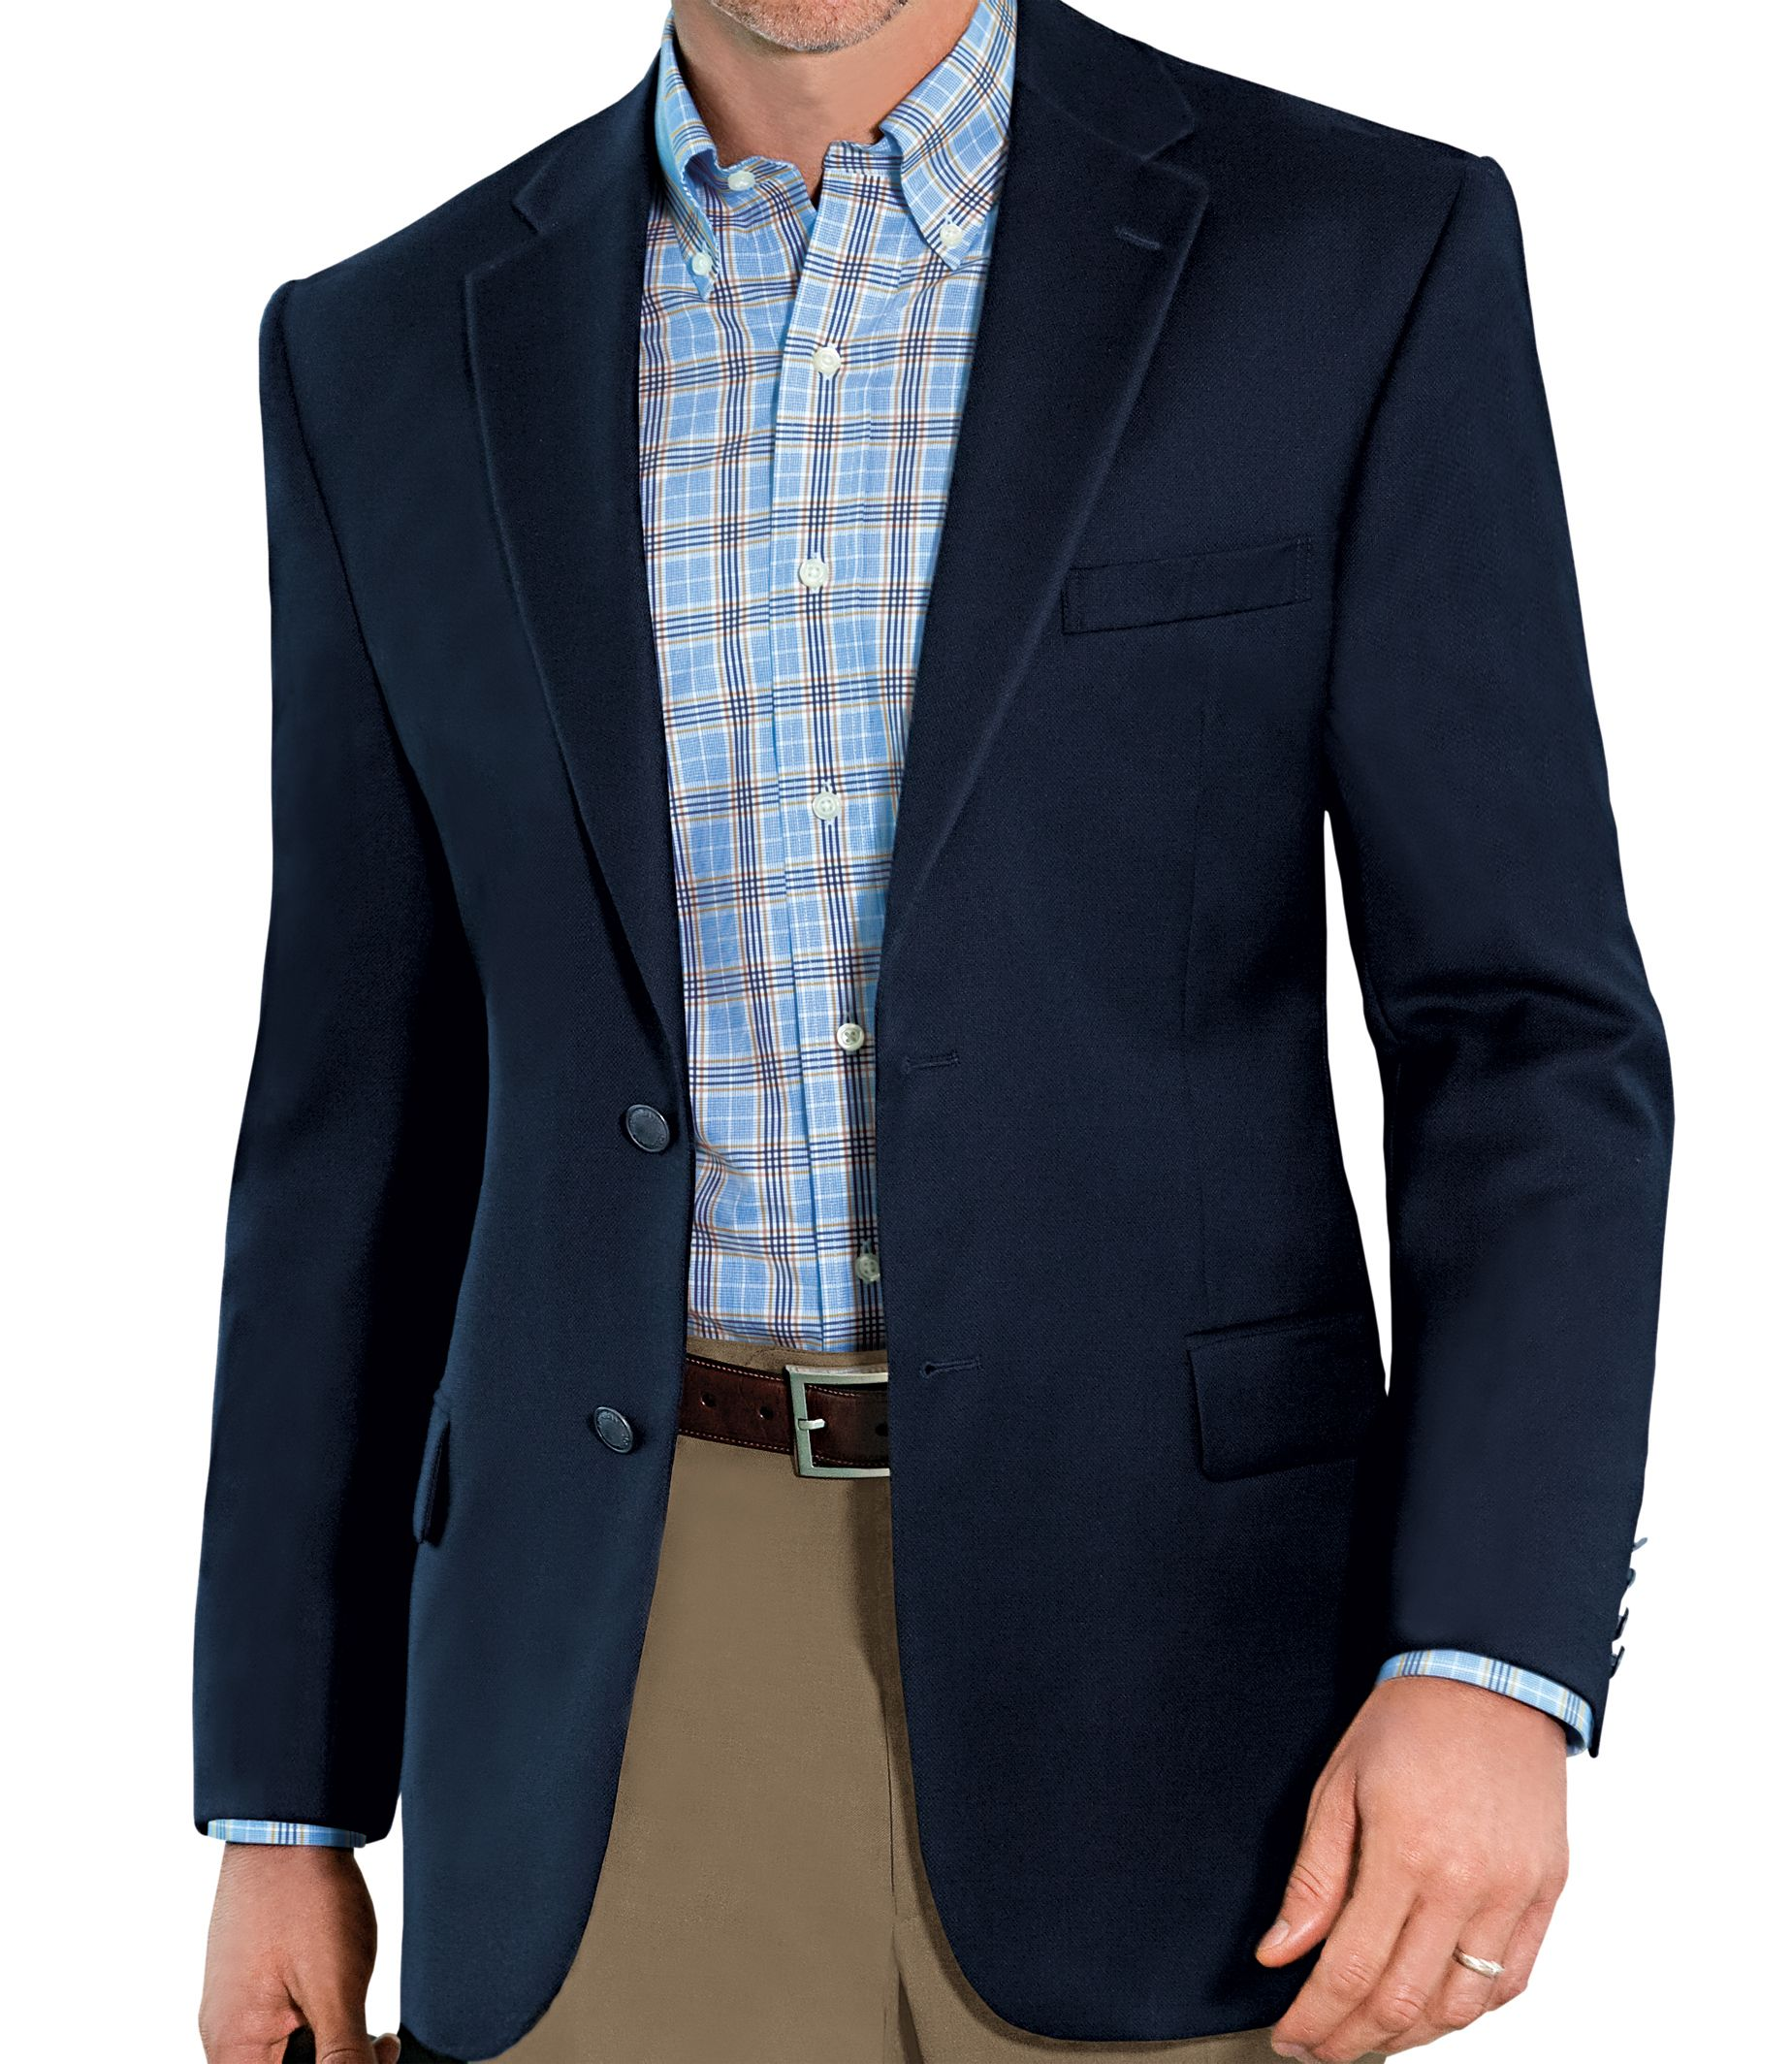 Traveler Collection Tailored Fit Blazer - Traveler Sportcoats ...